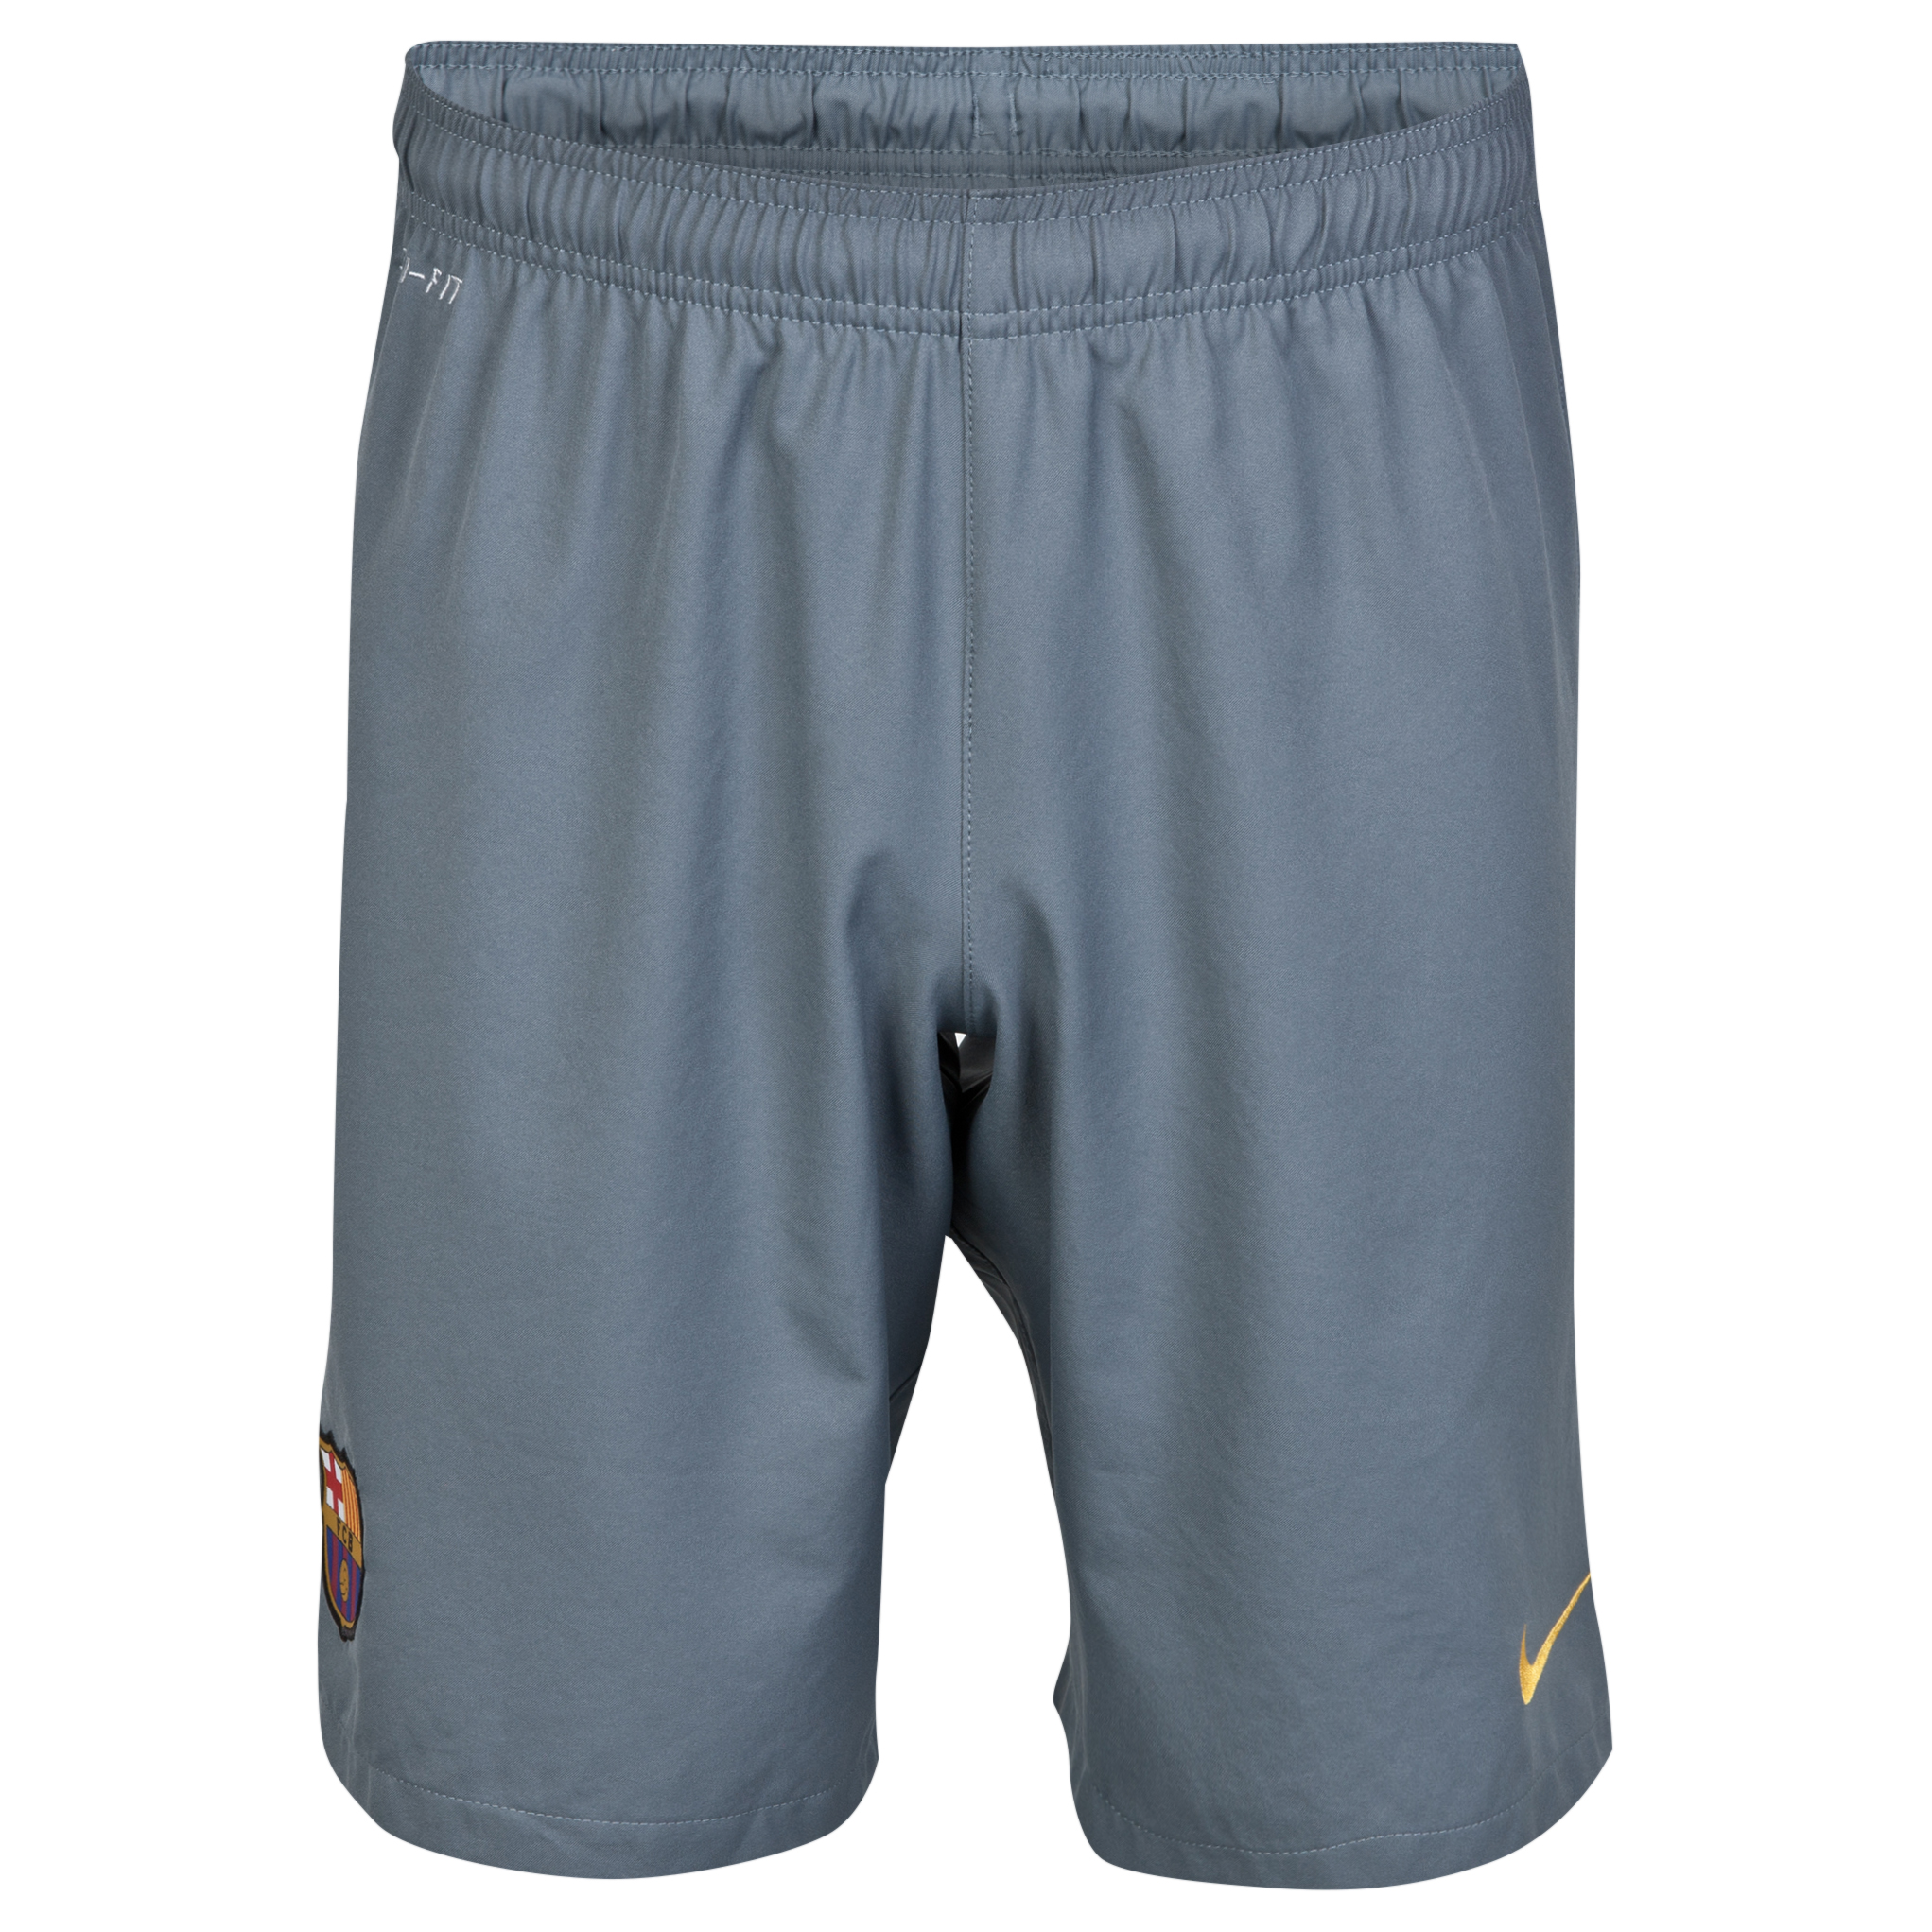 Barcelona Goalkeeper Shorts 2014/15 Grey